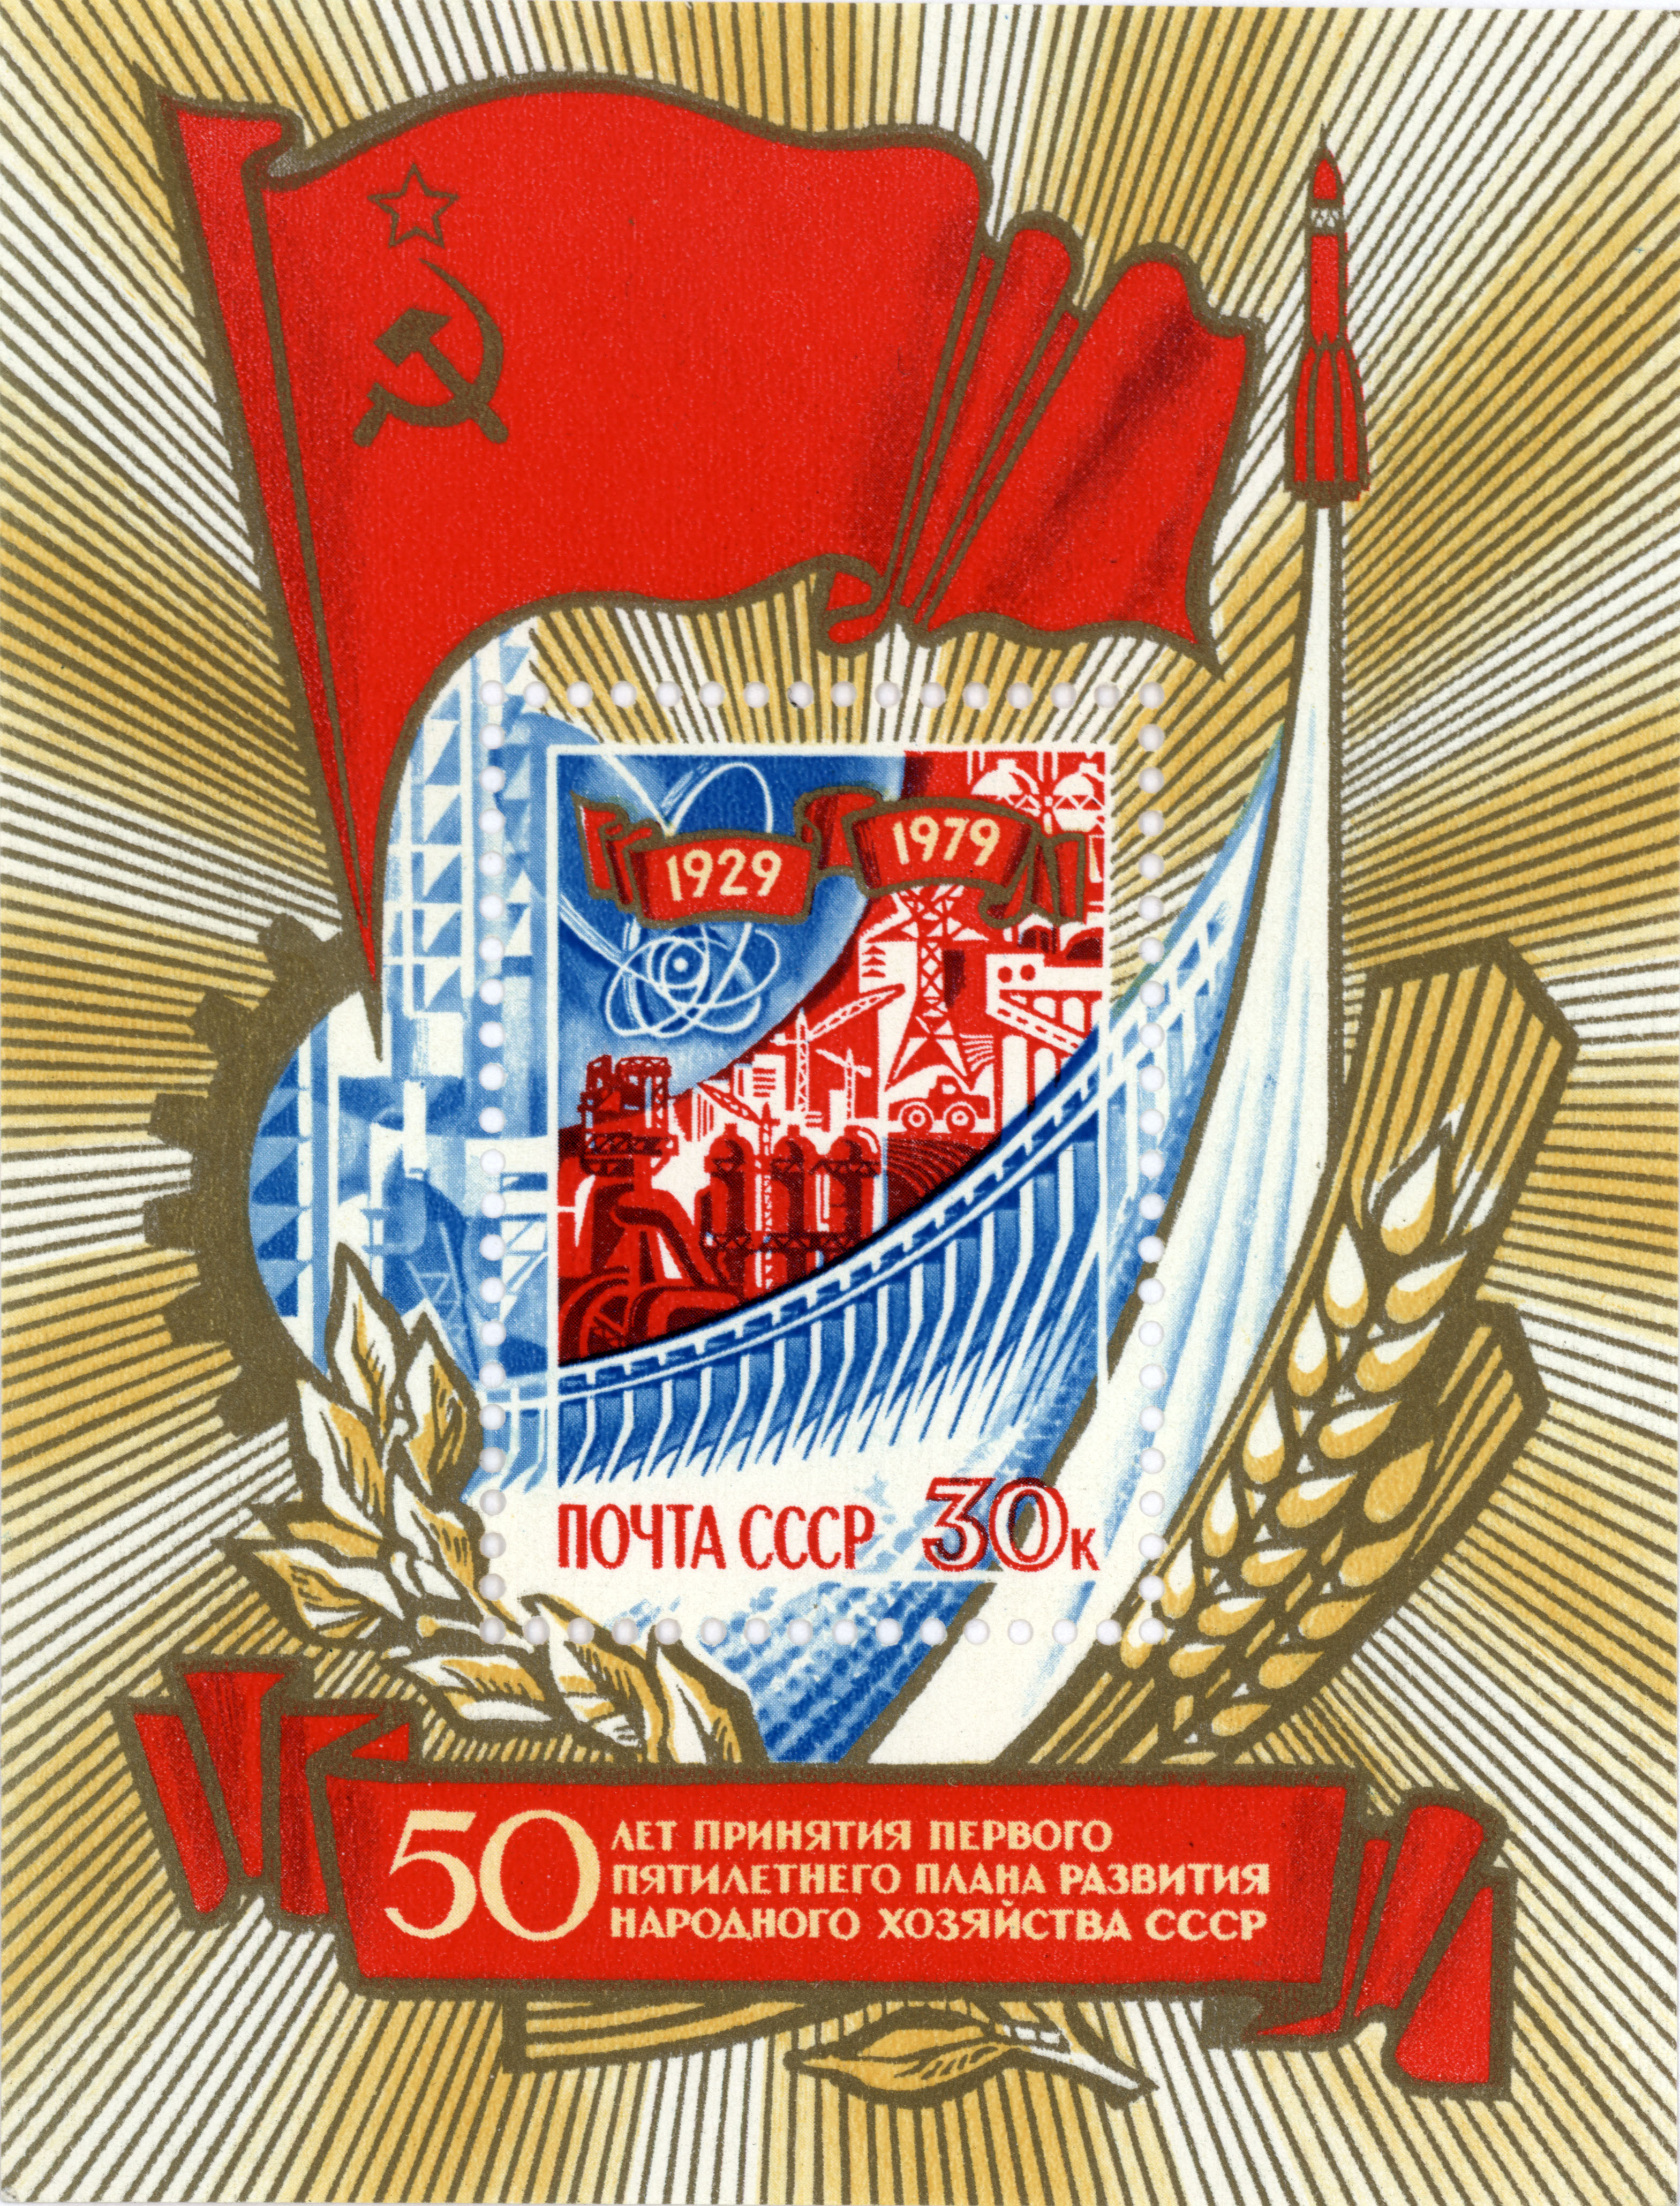 50th anniversary of 5-year plan. USSR postage block. 1979